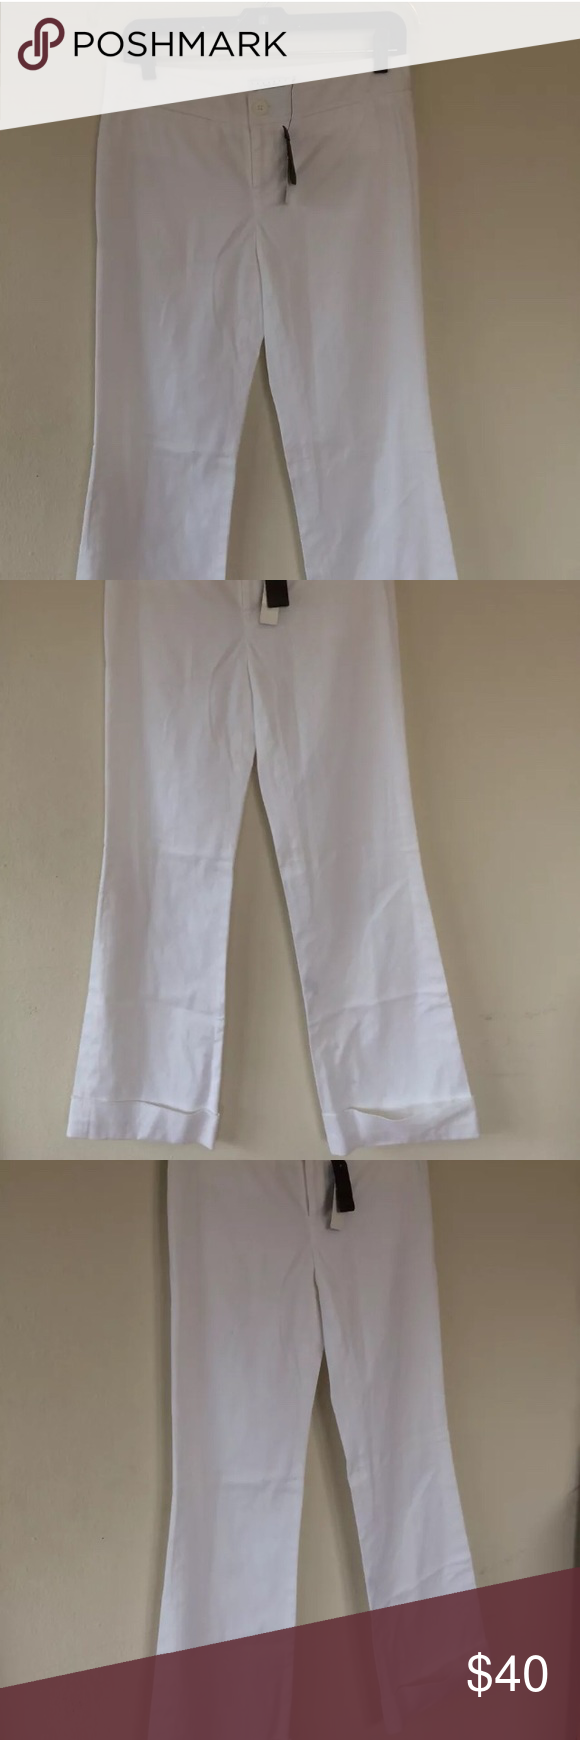 Laundry by Shelli Segal white slacks, size 4 15.5 inch waist when laying flat, 32.5 inch inseam. Laundry By Shelli Segal Pants Boot Cut & Flare #whiteslacks Laundry by Shelli Segal white slacks, size 4 15.5 inch waist when laying flat, 32.5 inch inseam. Laundry By Shelli Segal Pants Boot Cut & Flare #whiteslacks Laundry by Shelli Segal white slacks, size 4 15.5 inch waist when laying flat, 32.5 inch inseam. Laundry By Shelli Segal Pants Boot Cut & Flare #whiteslacks Laundry by Shelli Segal white #whiteslacks